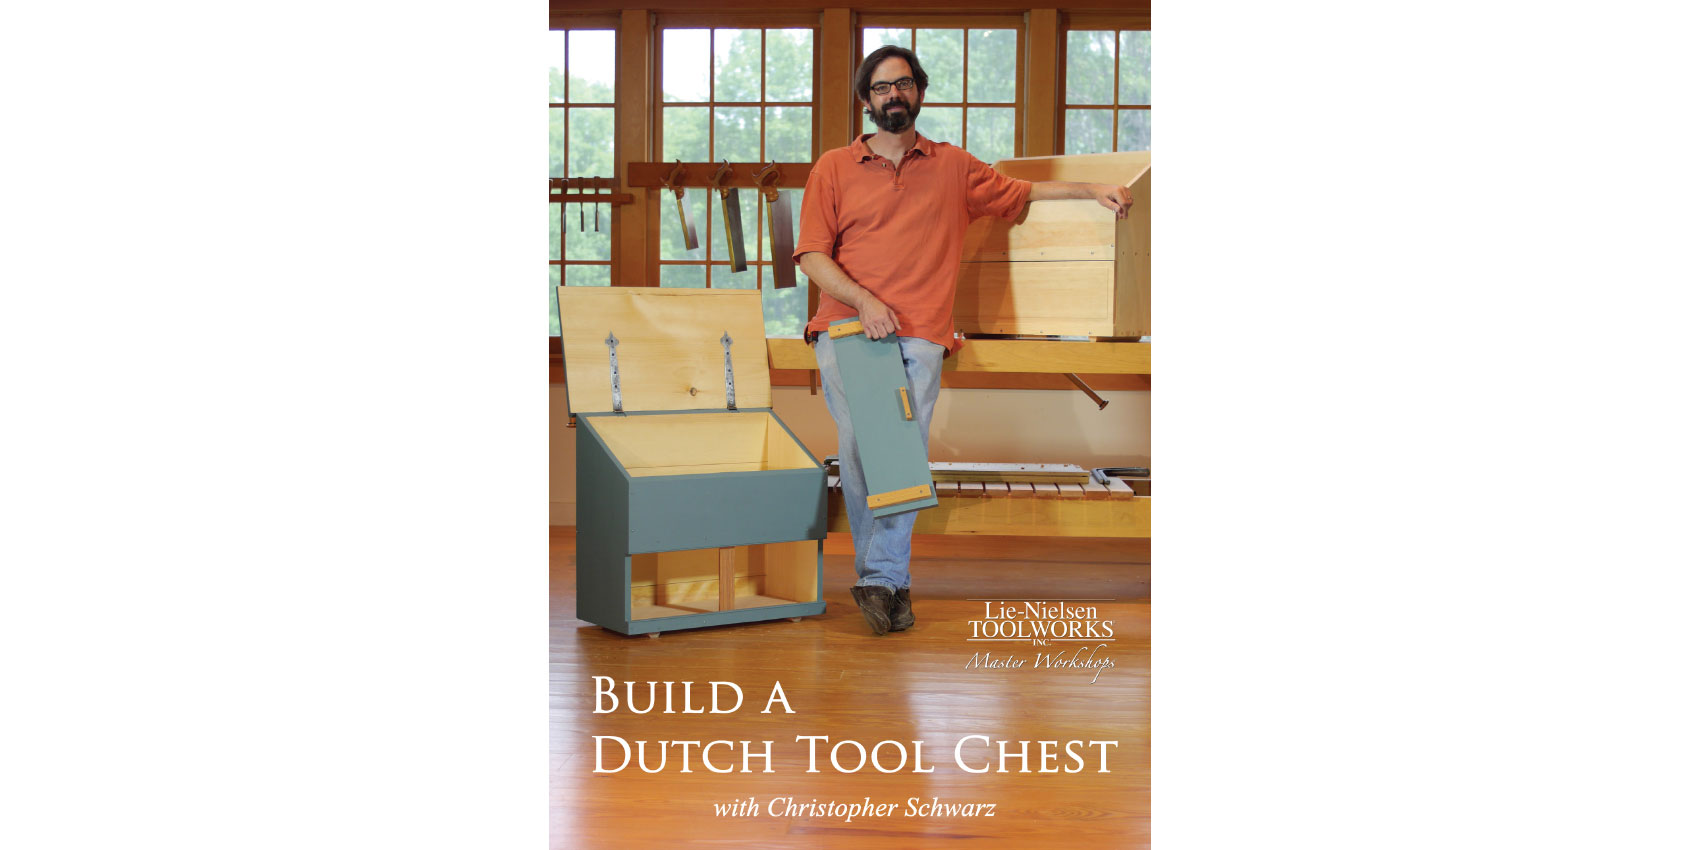 Build a Dutch Tool Chest